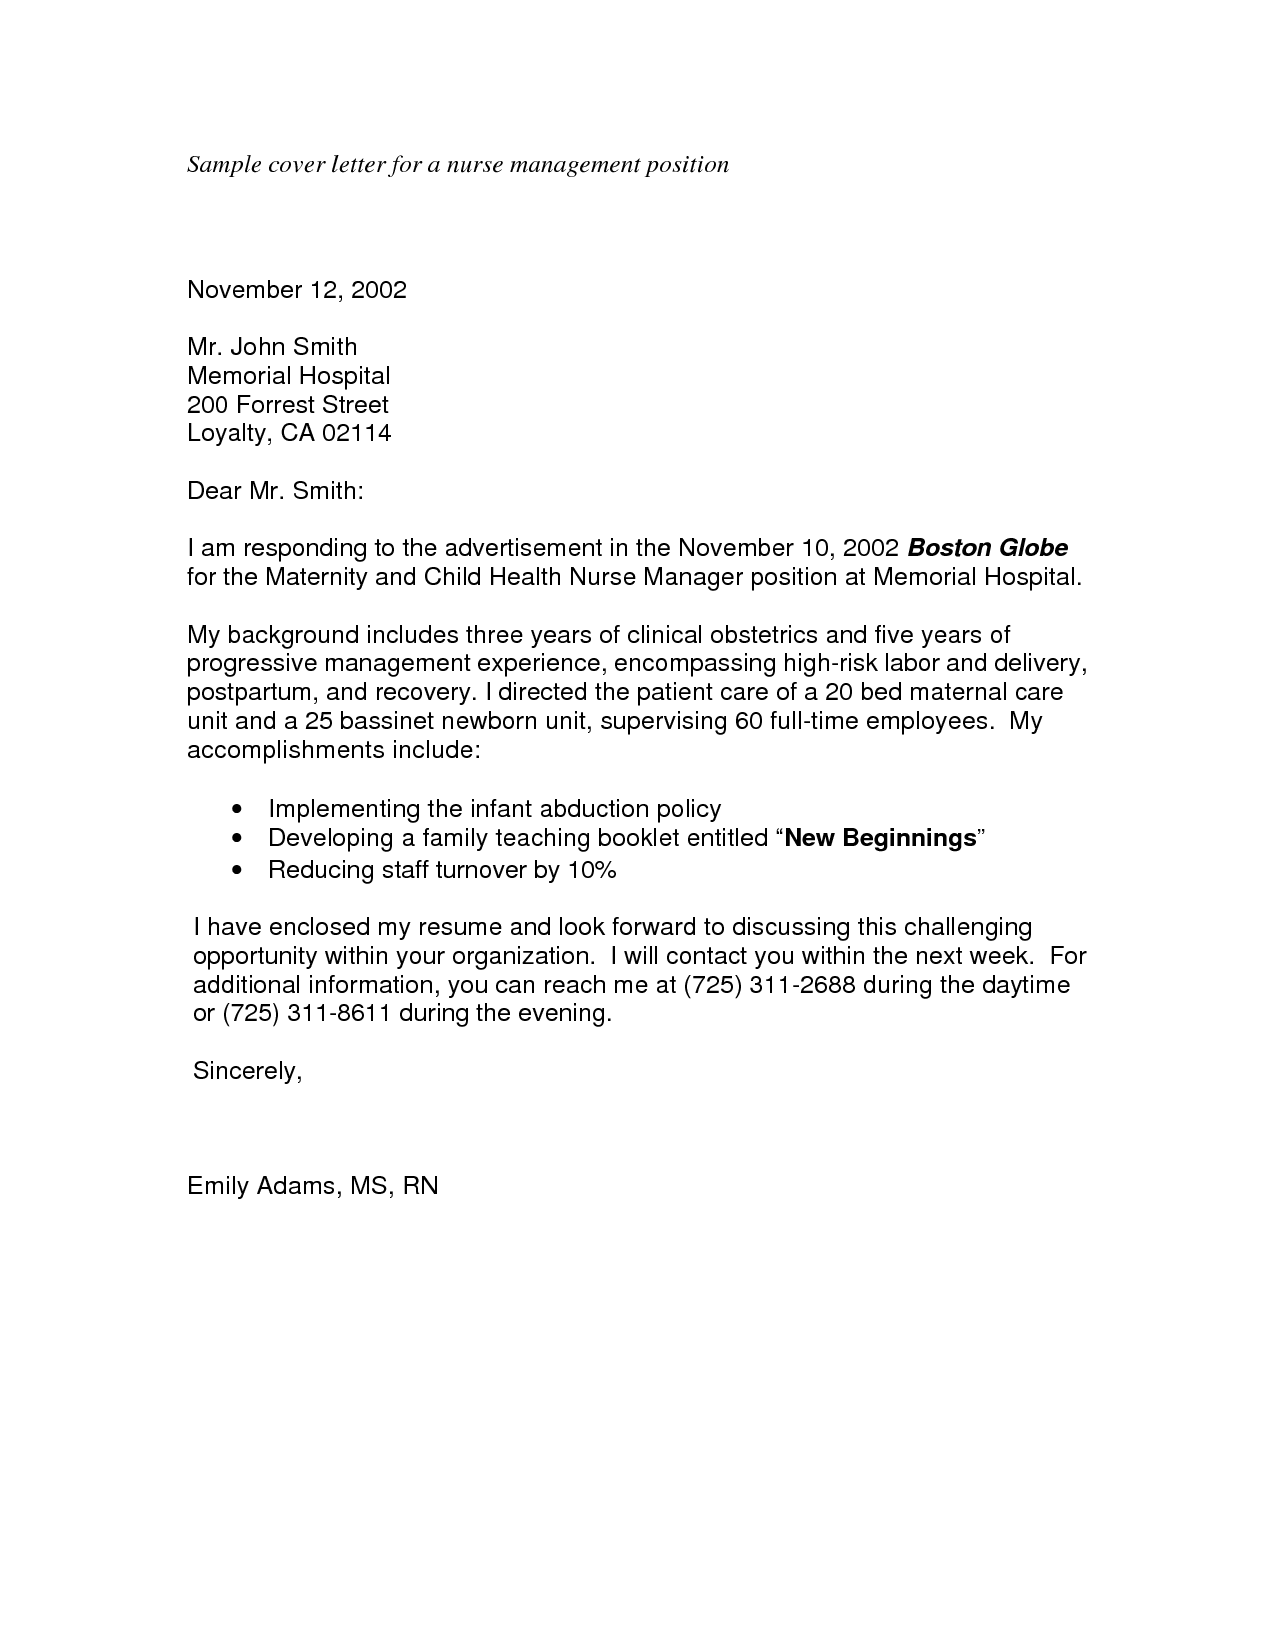 Sample Nursing Application Cover Letters | Sample Cover Letter For A Nurse  Management Position   PDF